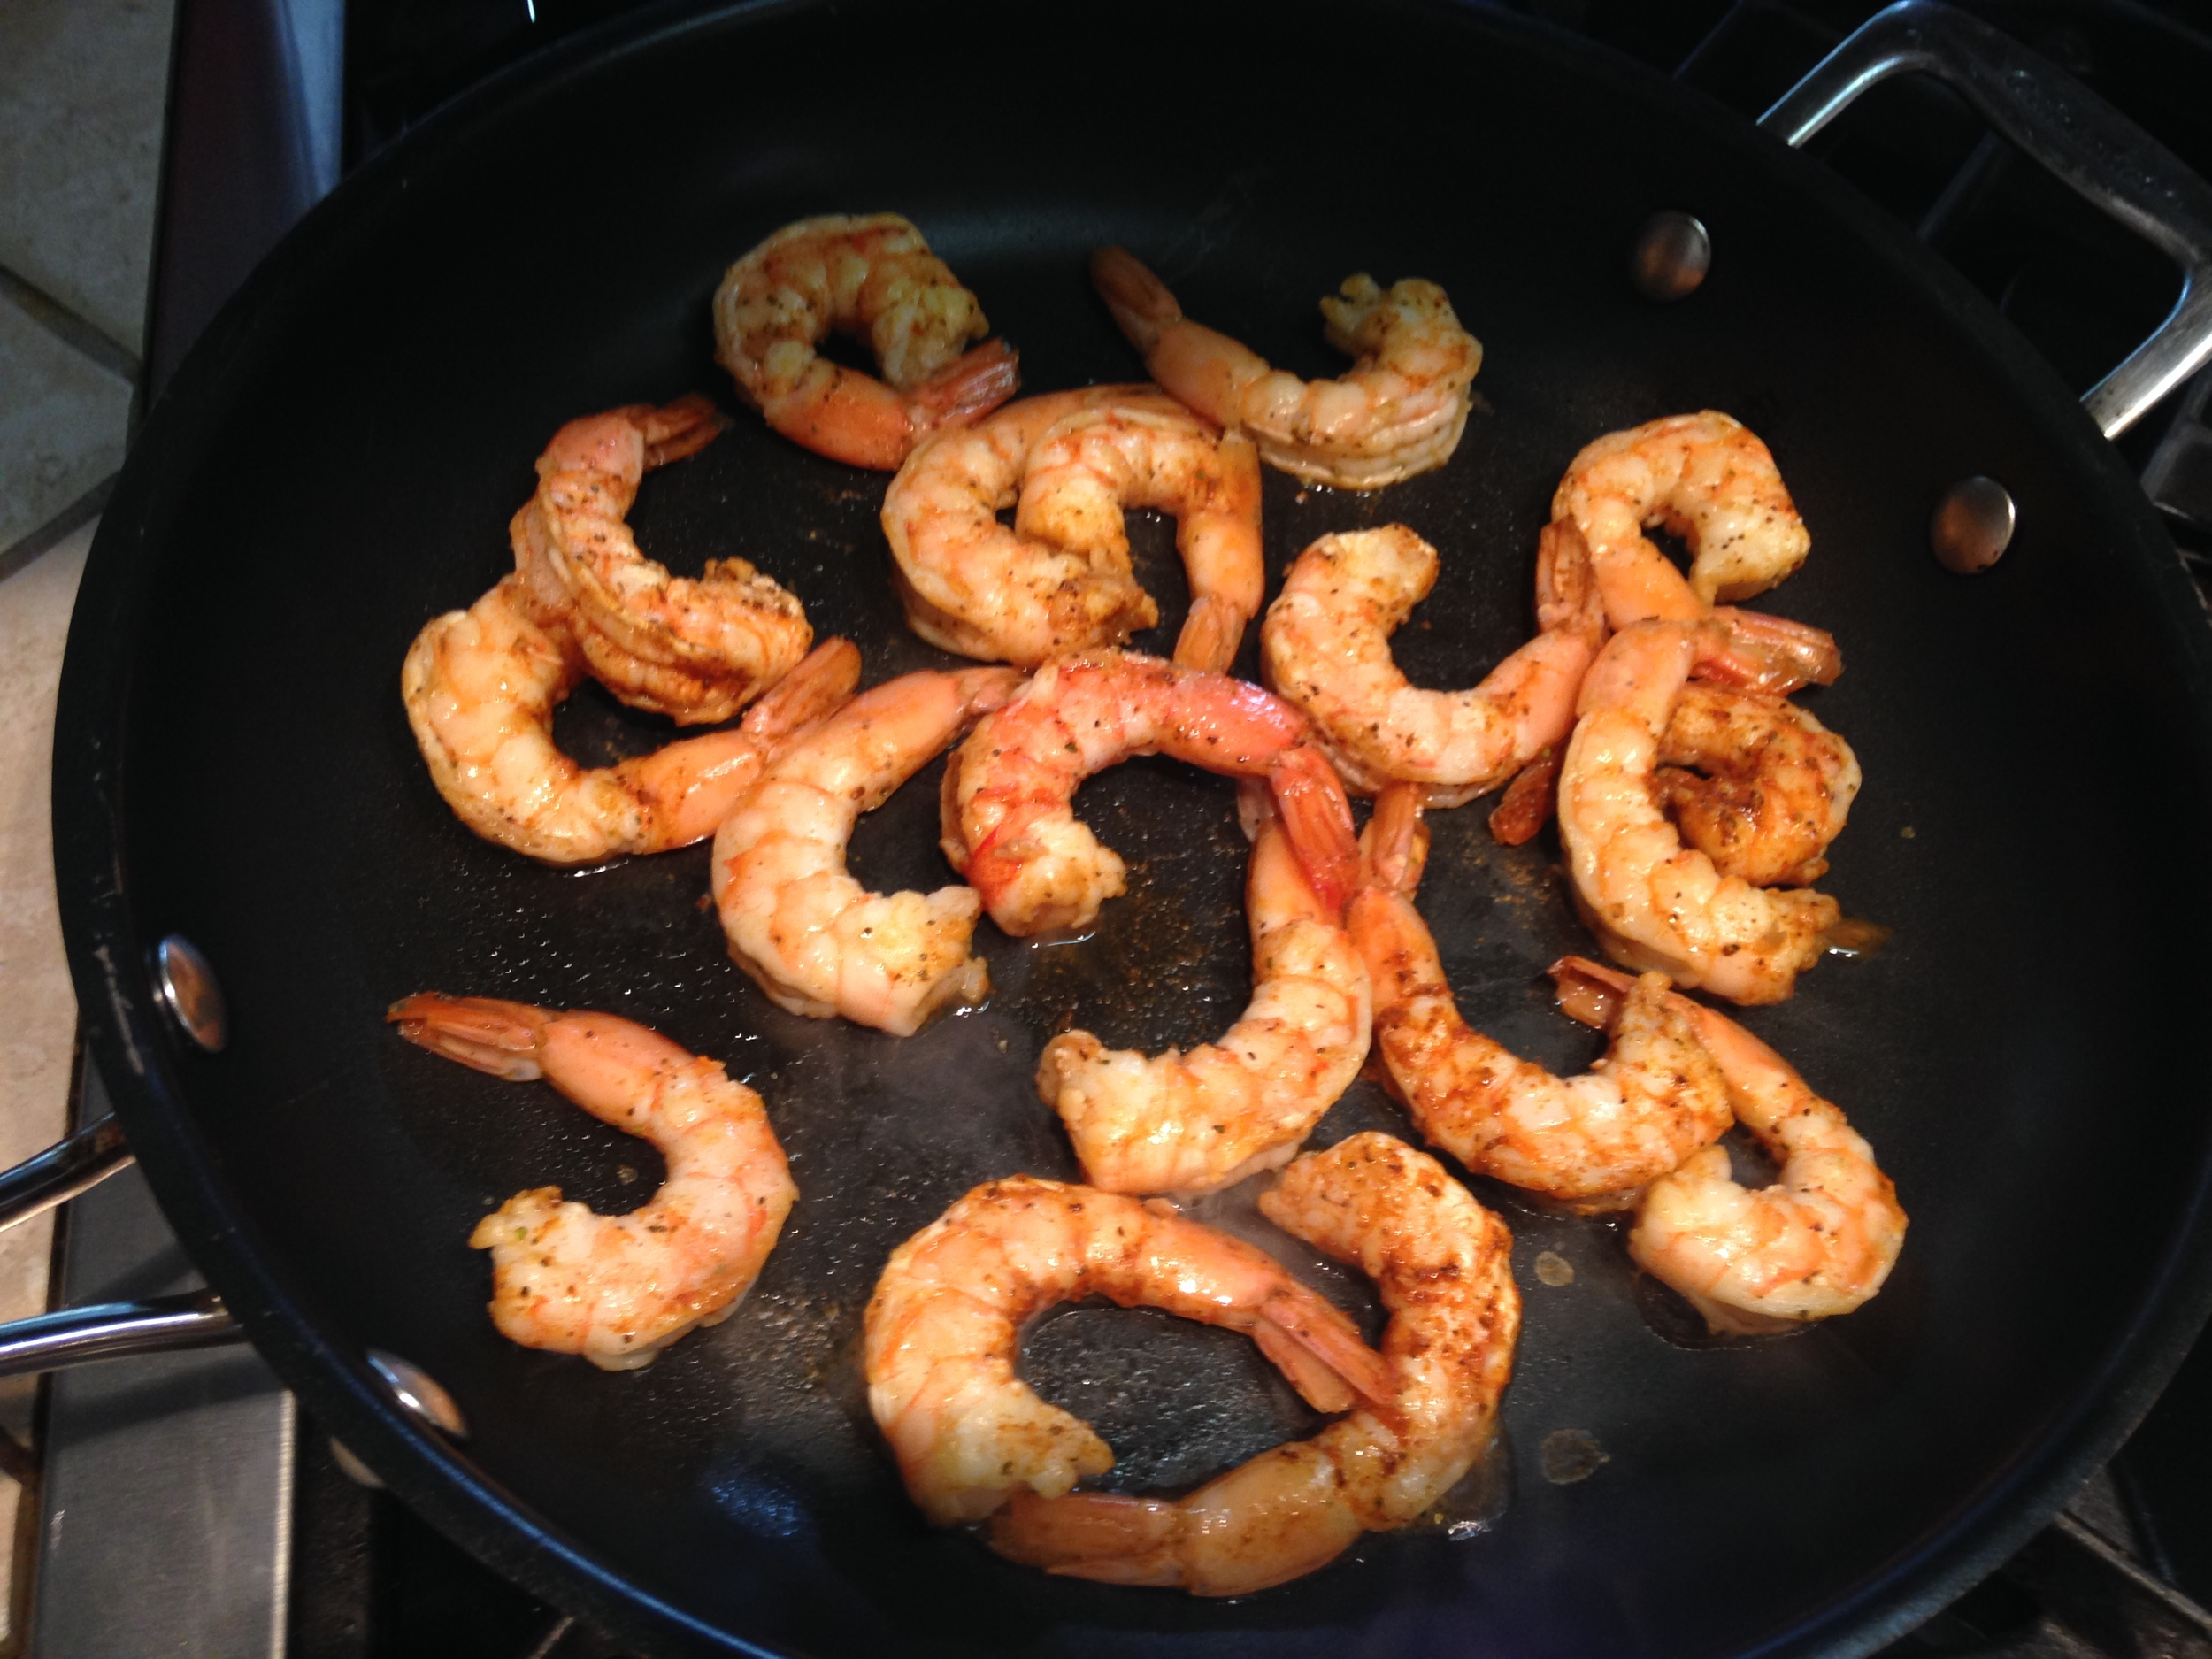 finishing touch: sauté the shrimp!